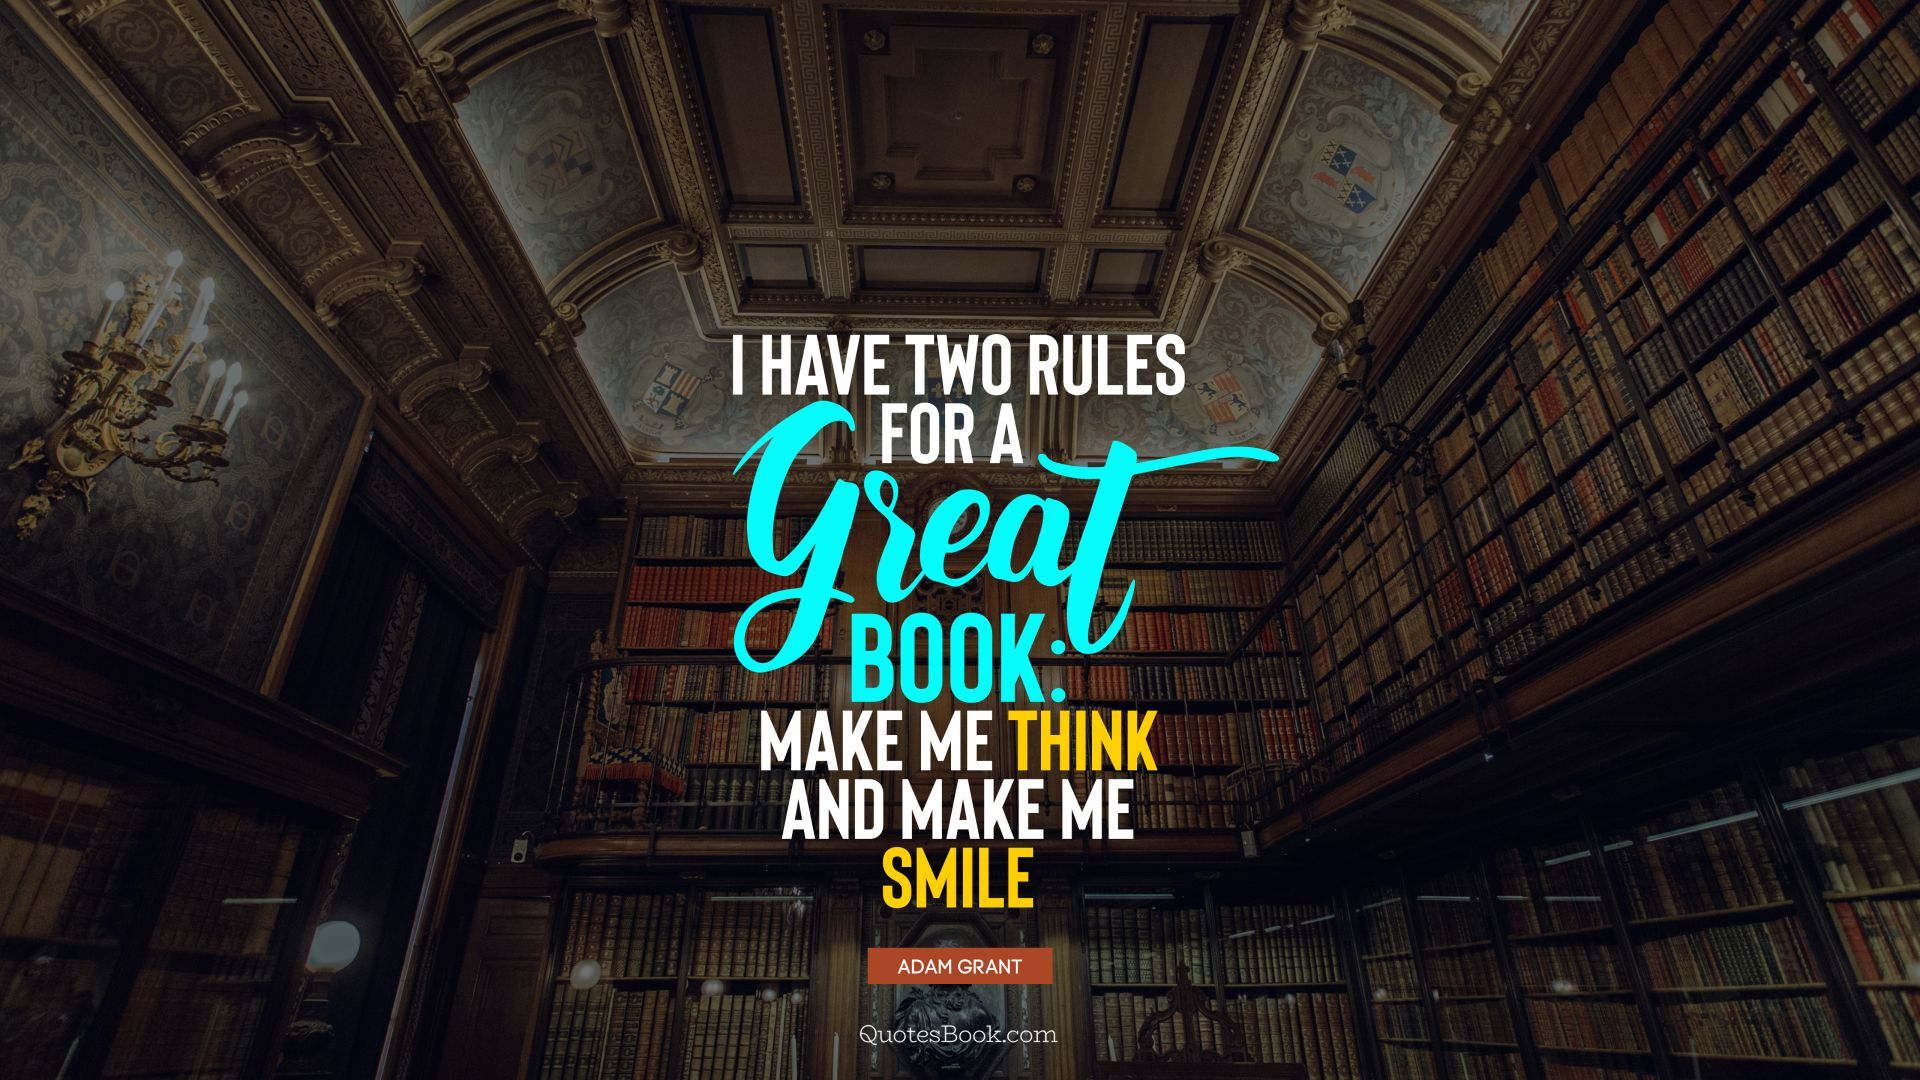 I have two rules for a great book: make me think and make me smile. - Quote by Adam Grant